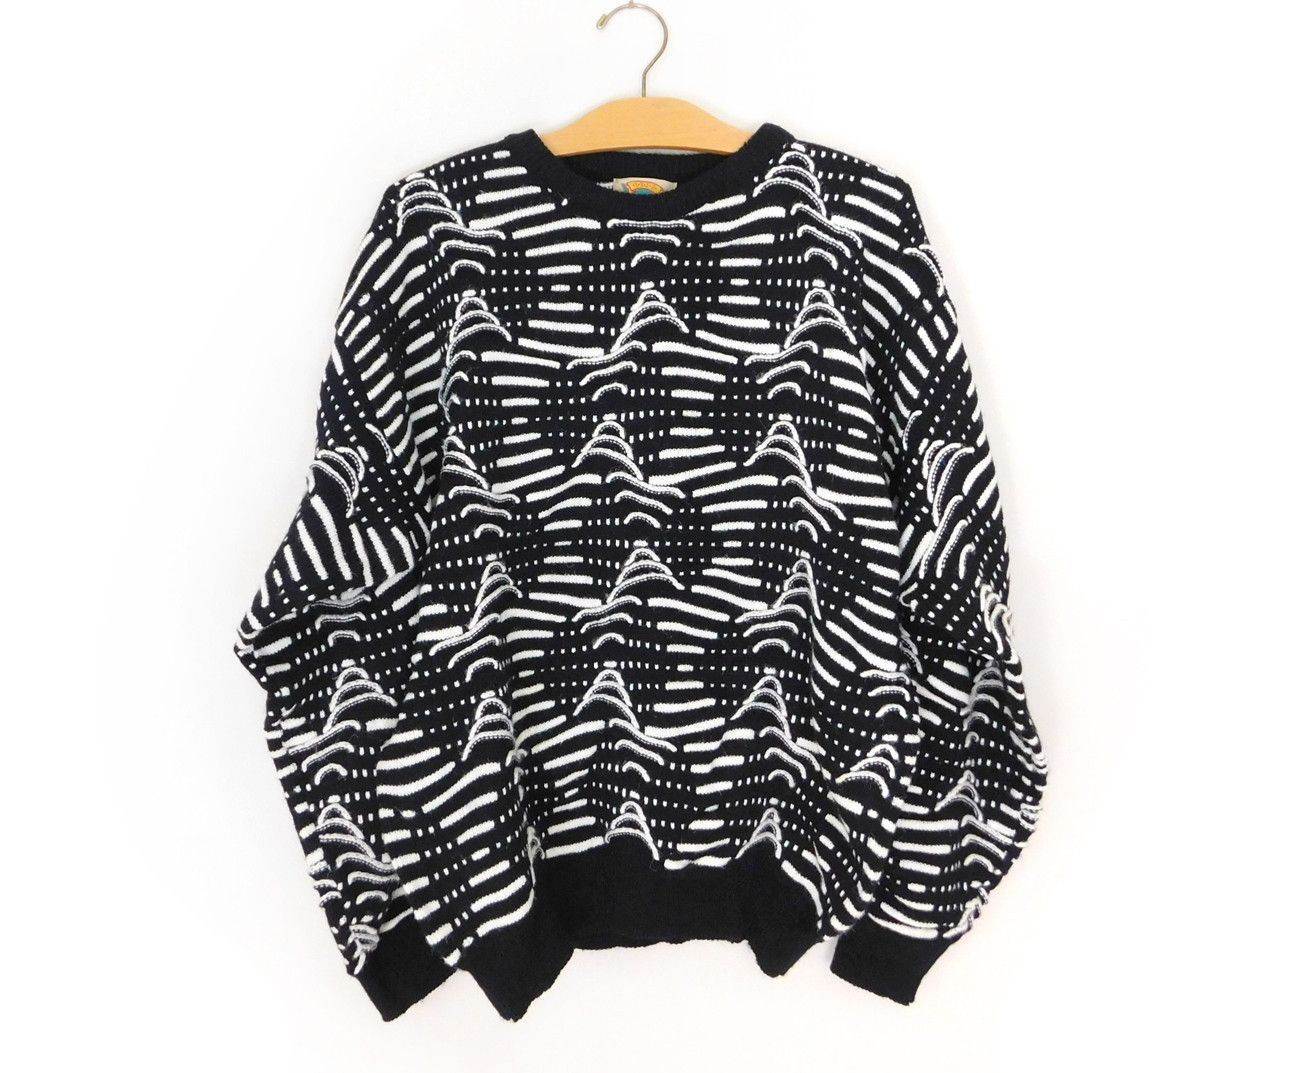 Sz L Baggy 80s Hipster Sweater - Men's Vintage Black and White ...